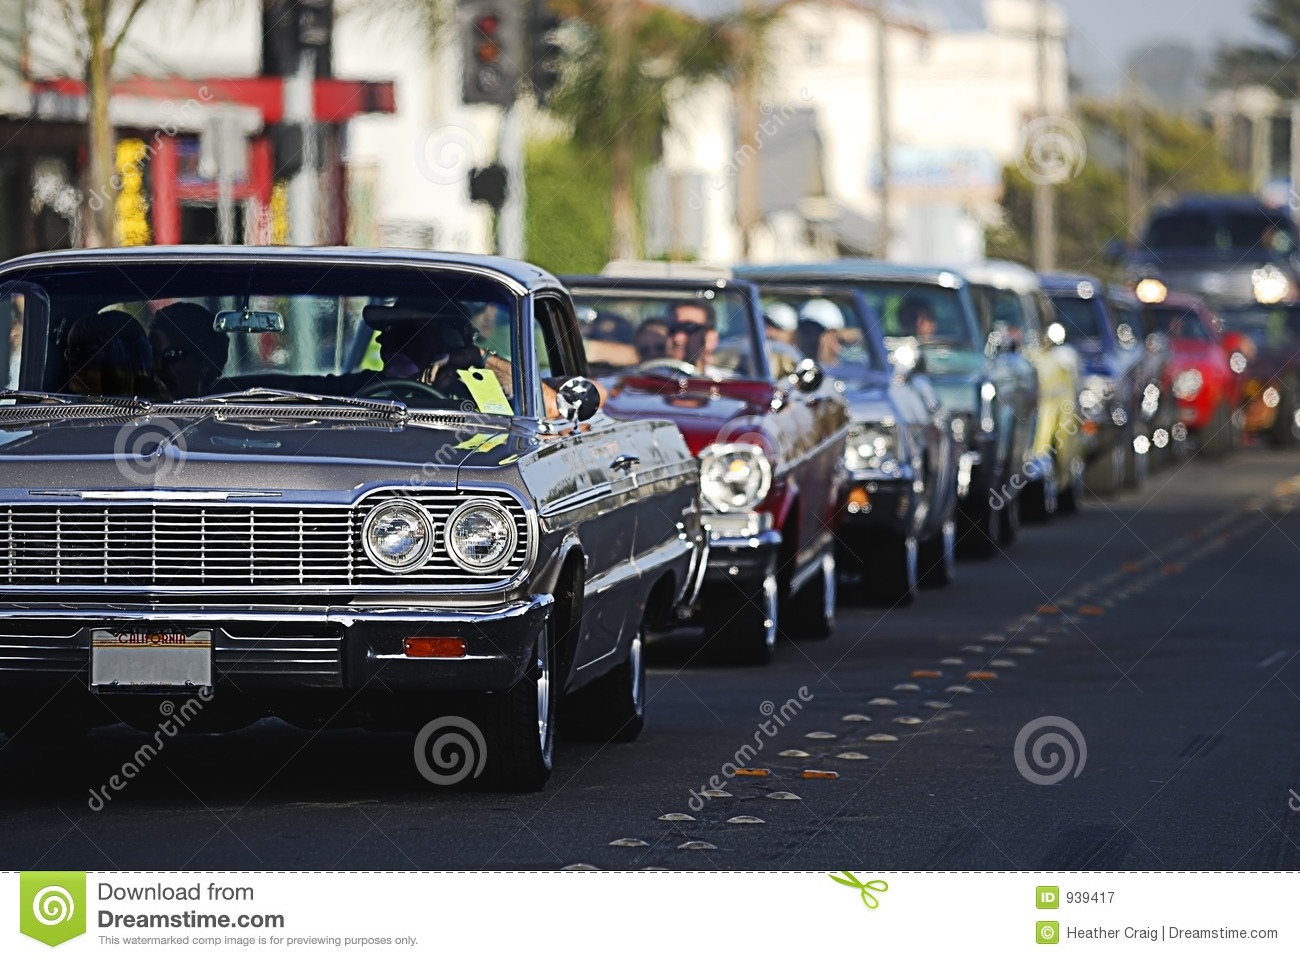 Classic Car Cruising 2 stock image. Image of antique, headlamp - 939417